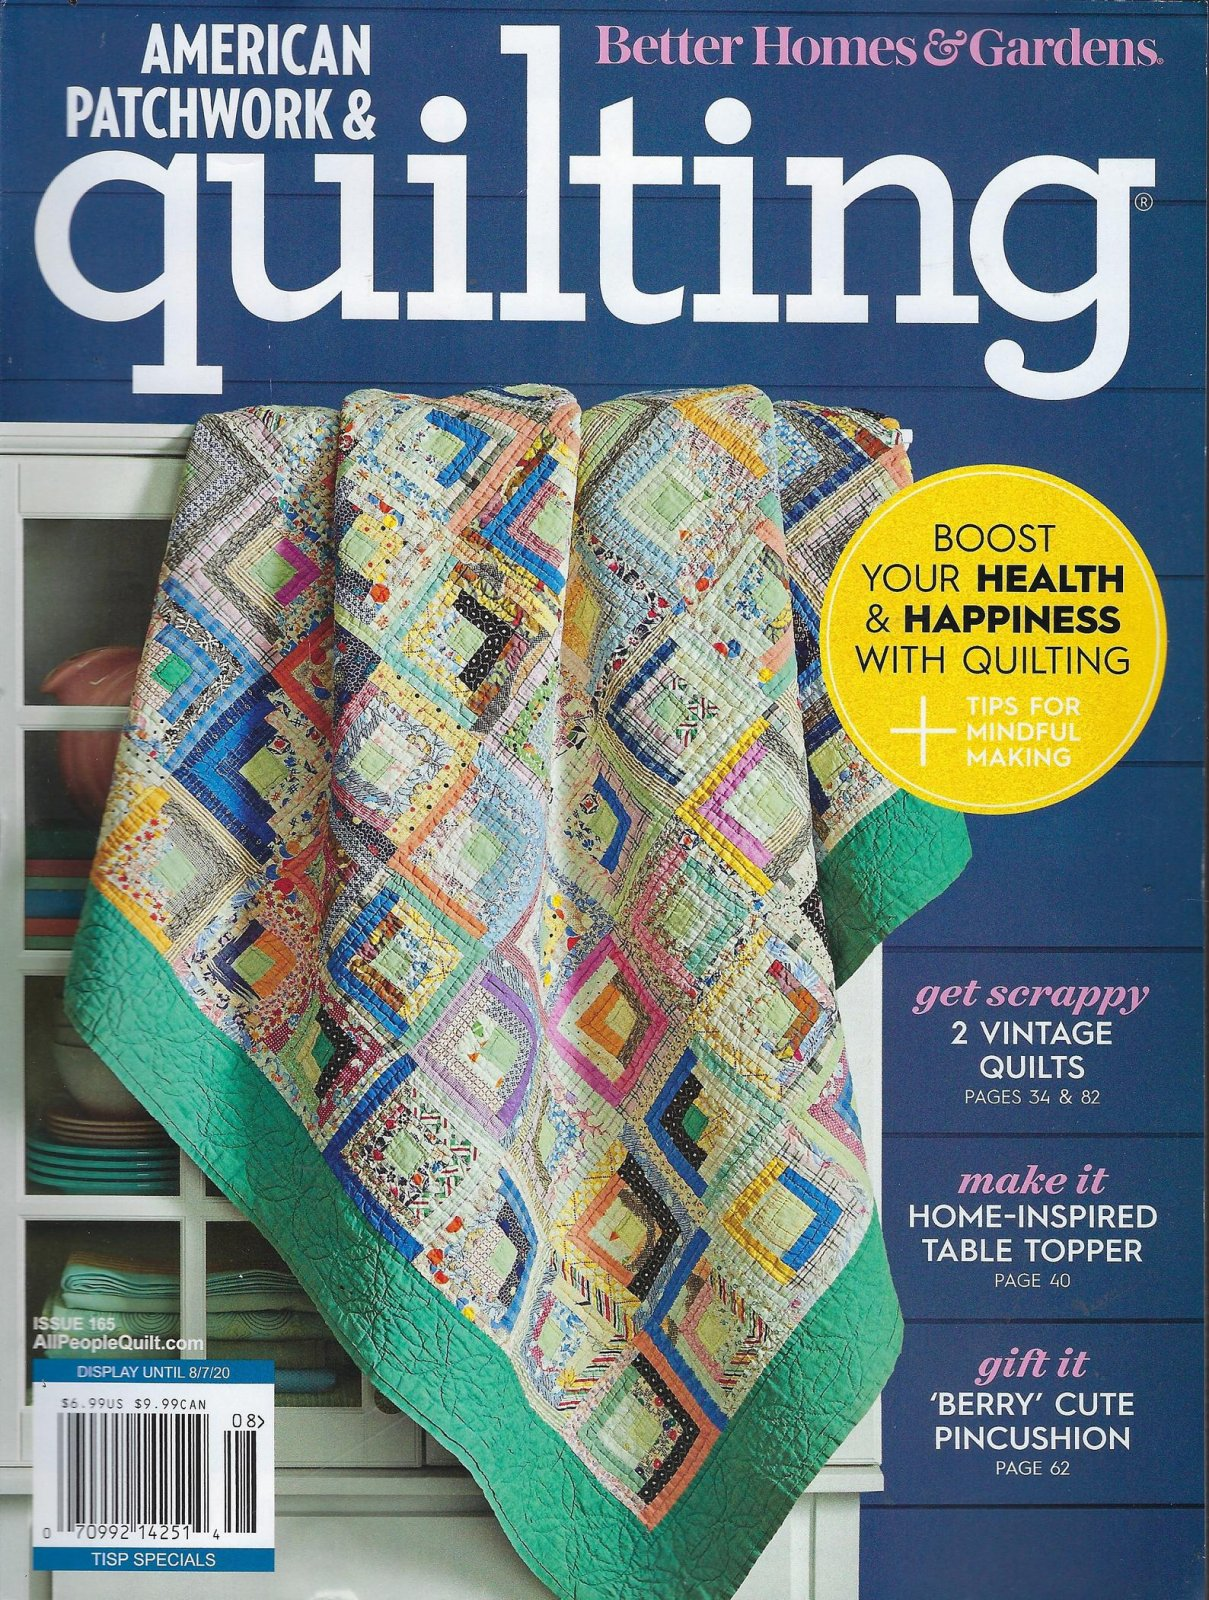 American Patchwork & Quilting August 2020